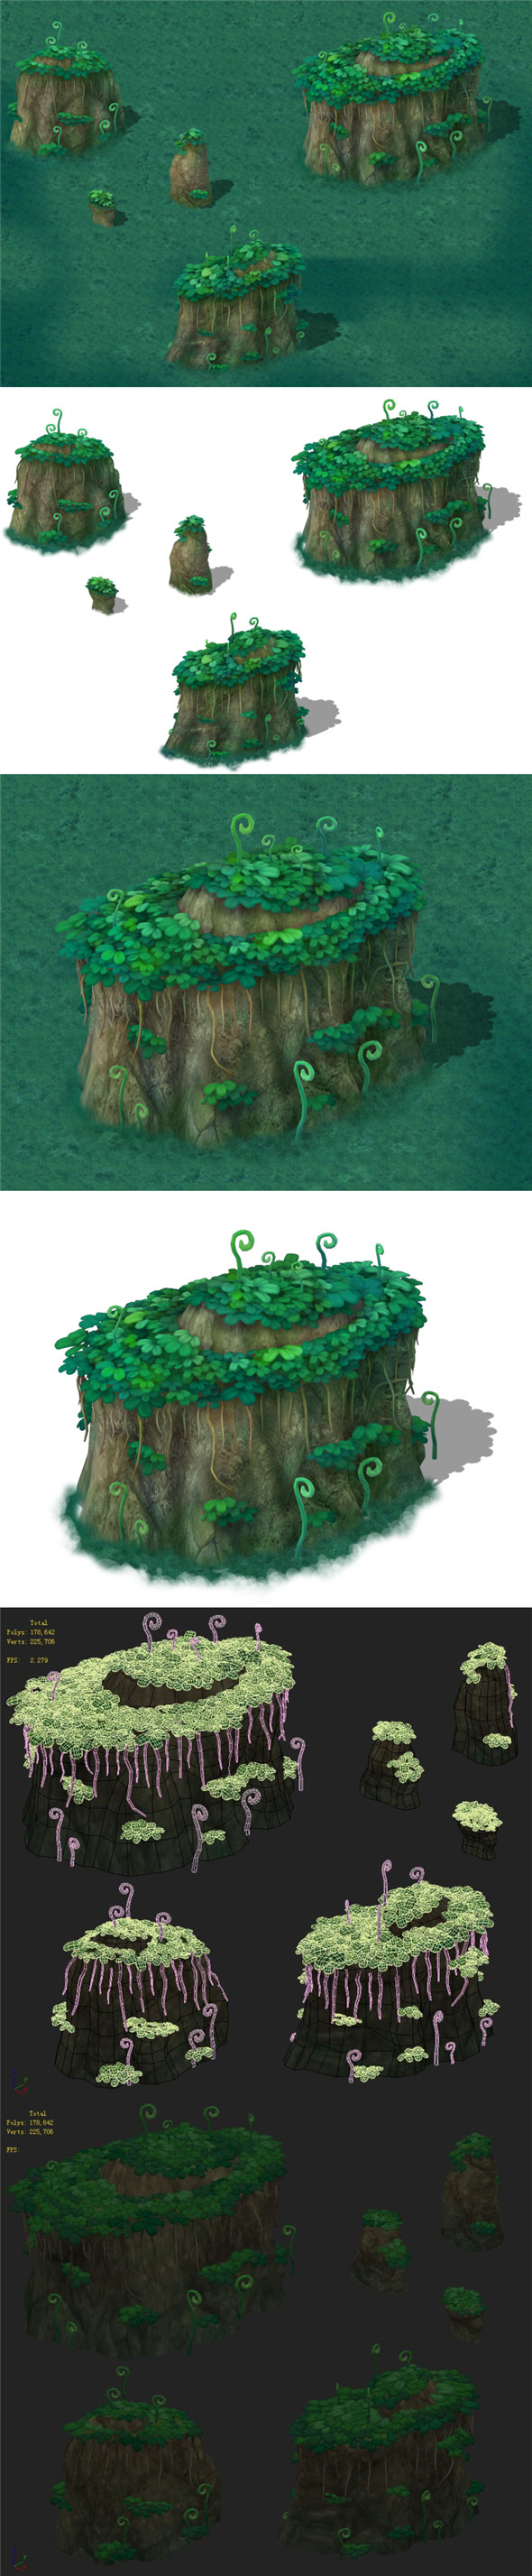 Cartoon version - spore forest terrain - 3DOcean Item for Sale